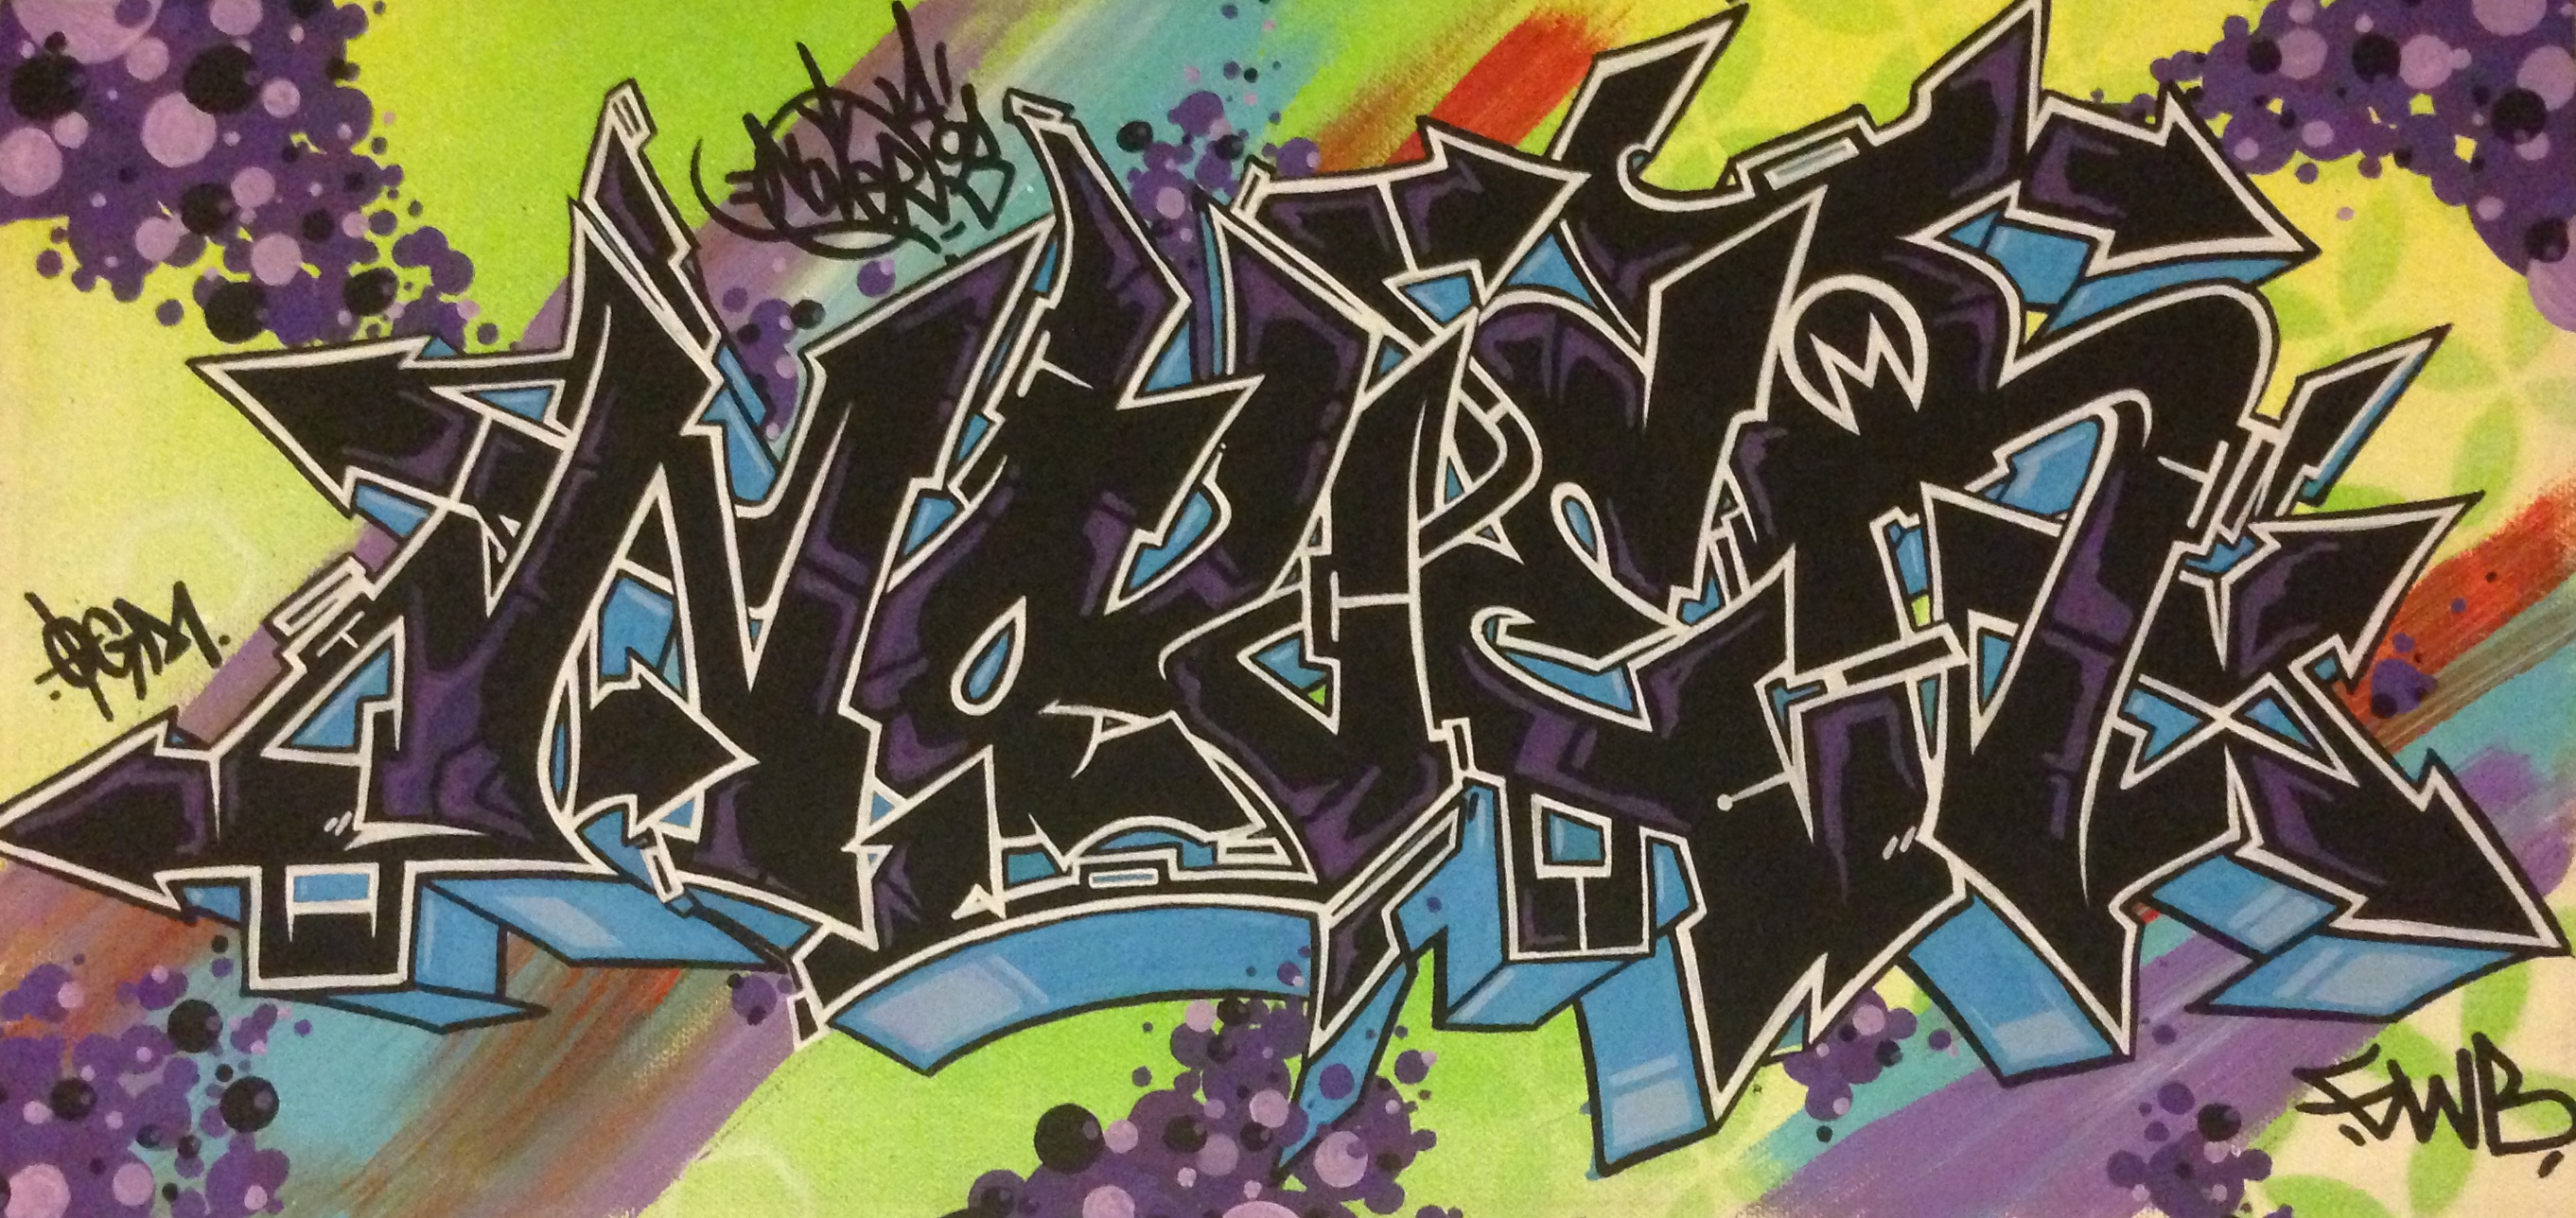 Nover, Canvas with Markers & Spray Paint. 2014.